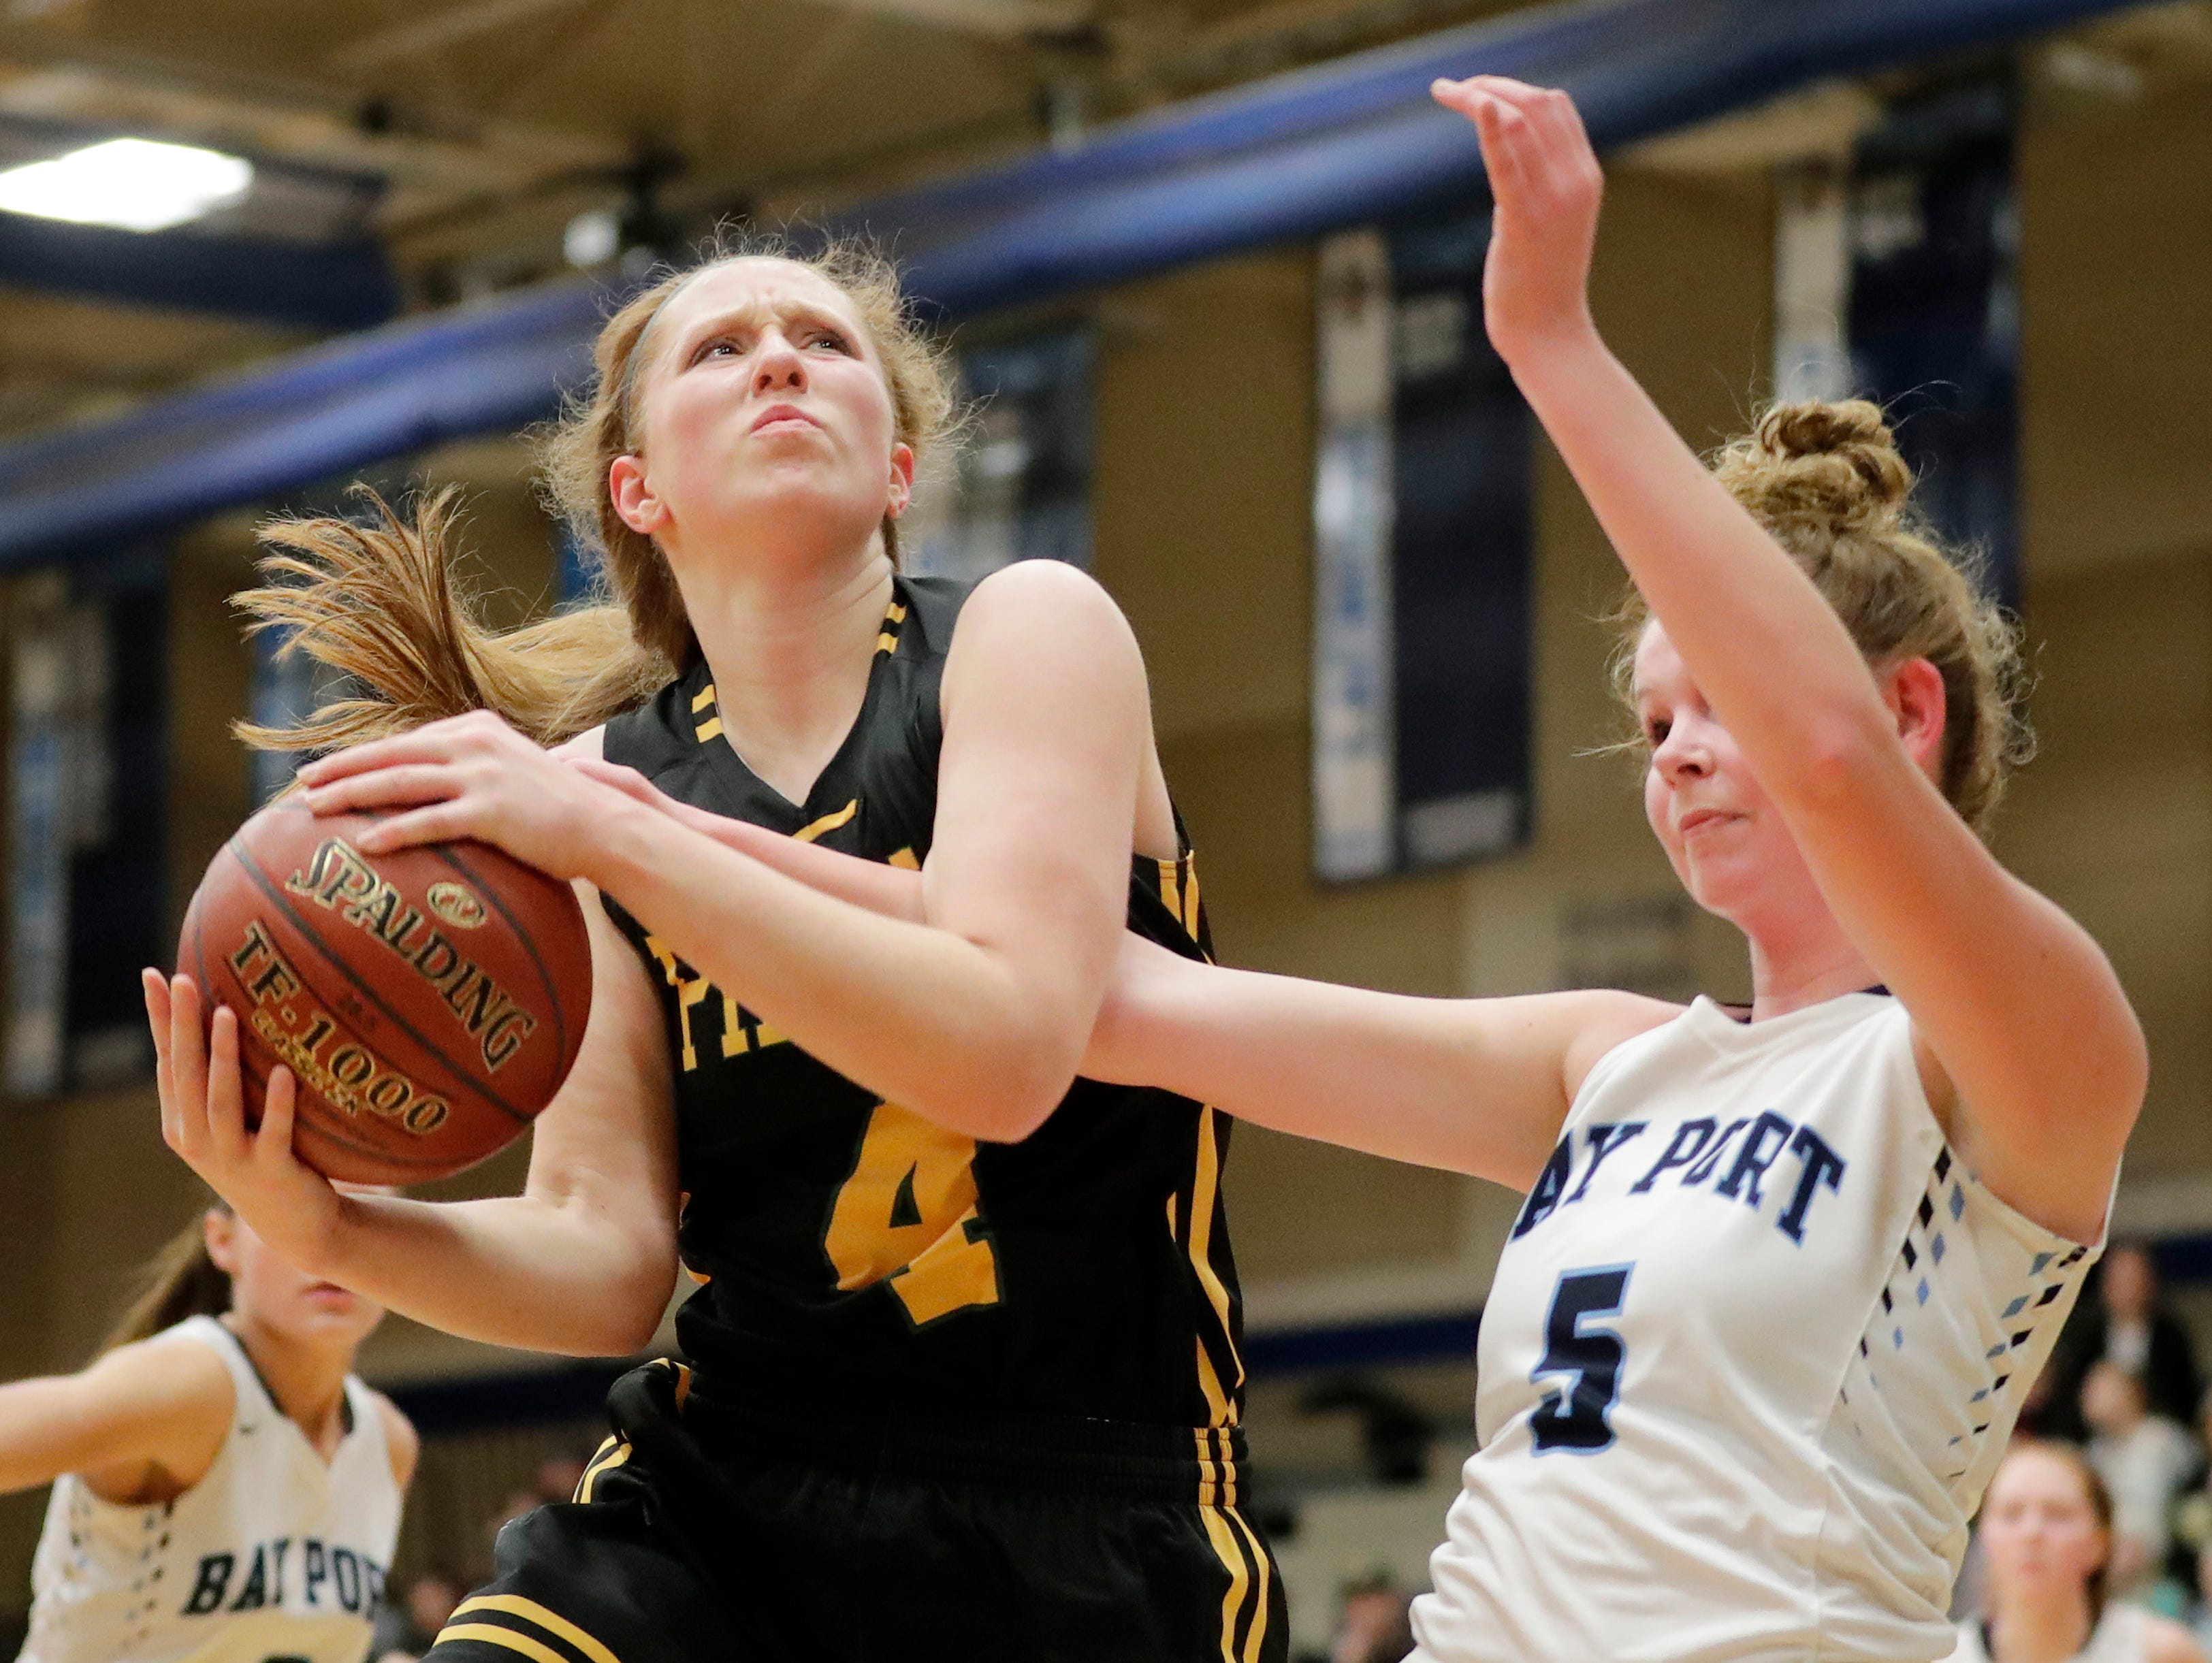 Green Bay Preble's Kendall Renard (4) grabs a rebound against Bay Port's Peyton Coughlin (5) in a FRCC girls basketball game at Bay Port high school on Friday, February 8, 2019 in Suamico, Wis.